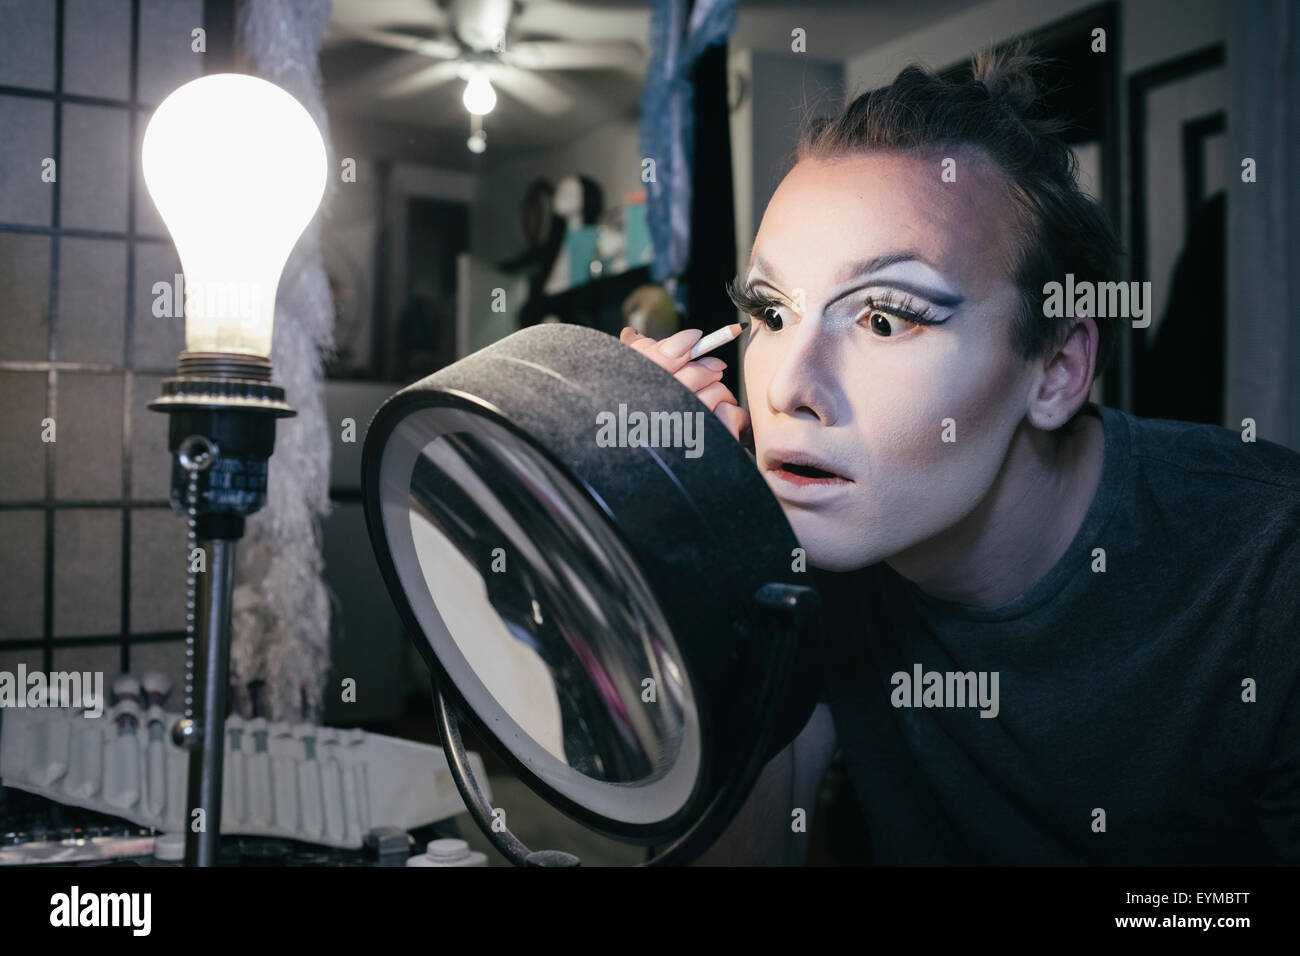 Male drag queen putting on make up and dressing up in prepration for a performance - Stock Image